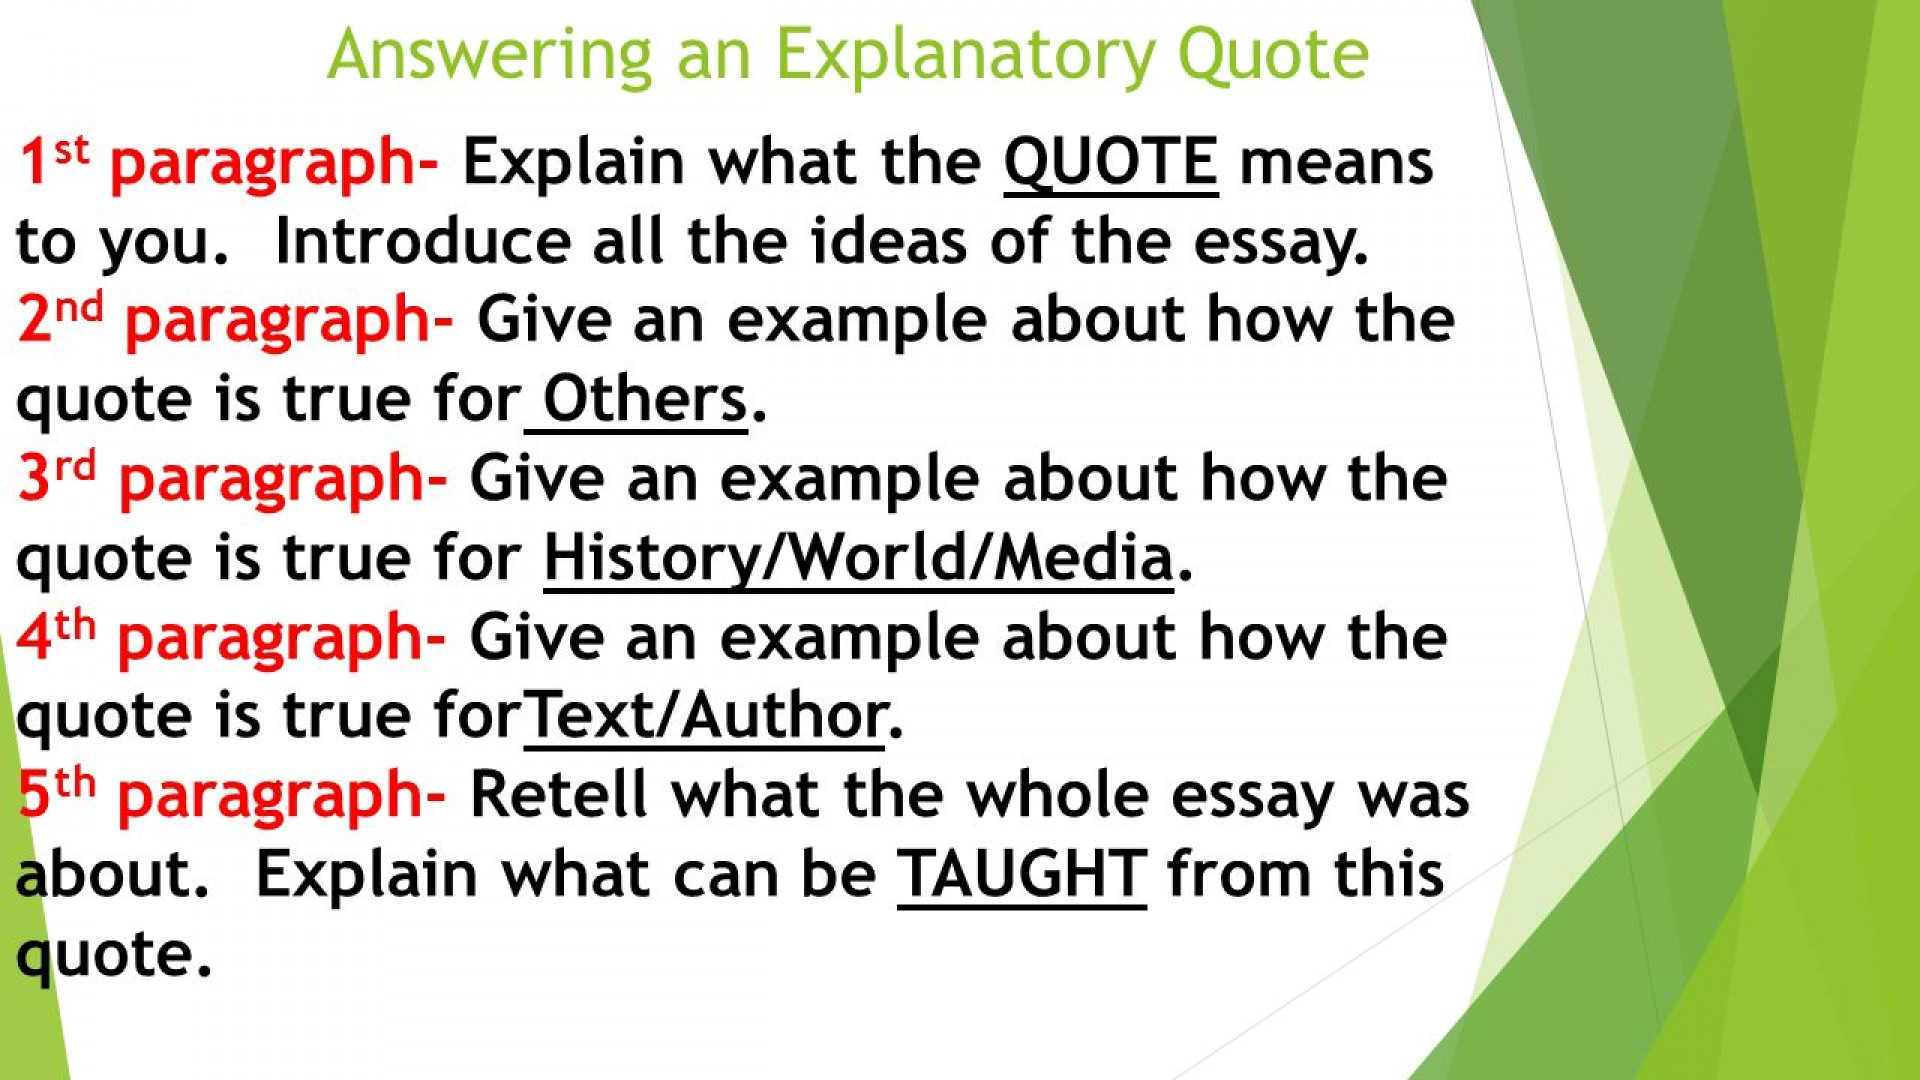 009 Essay Example How To Write An With Quotes Use Quote In Explaining Make For Writing Hindi Sl Famous Inspirational Pdf Good Papers Quotations Imposing Mla Integrate Essays-apa Or Include A Direct Apa 1920